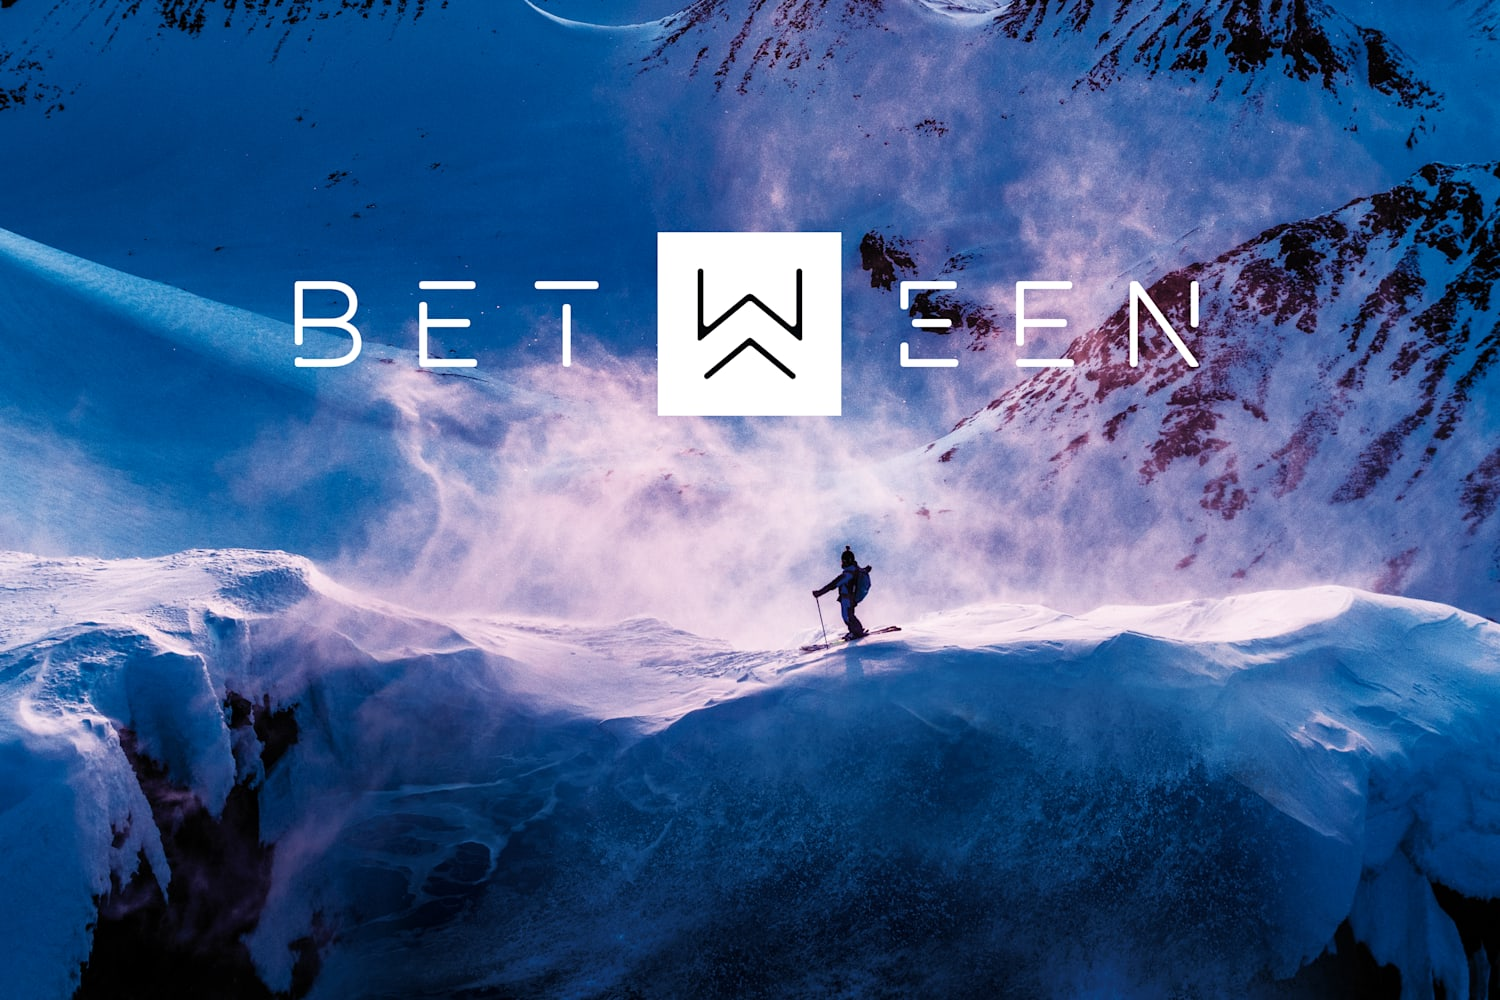 Girl power in skiing and surfing by red bull